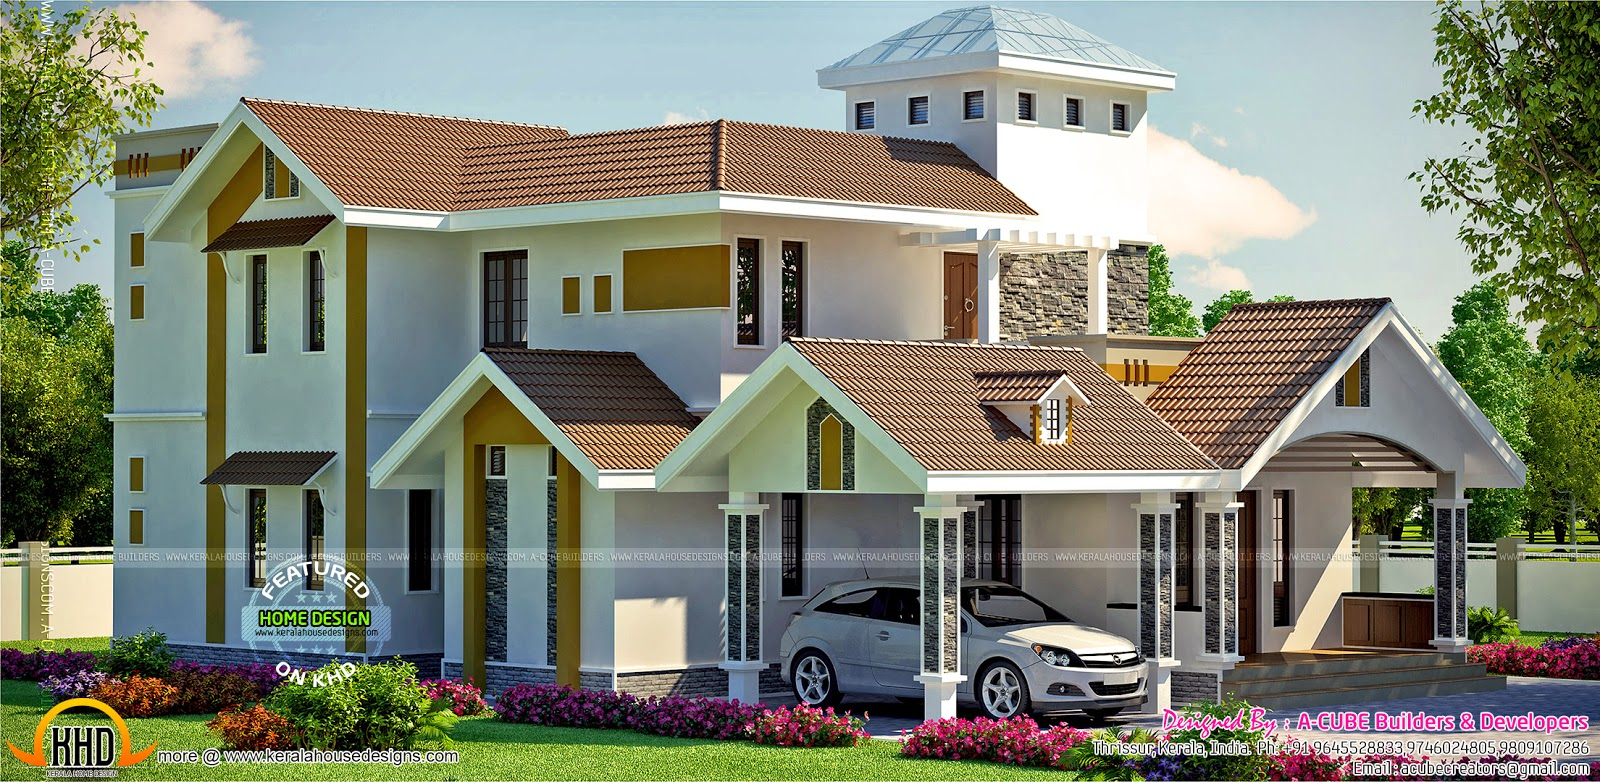 Modern house side view elevation kerala home design and for Side view house plans